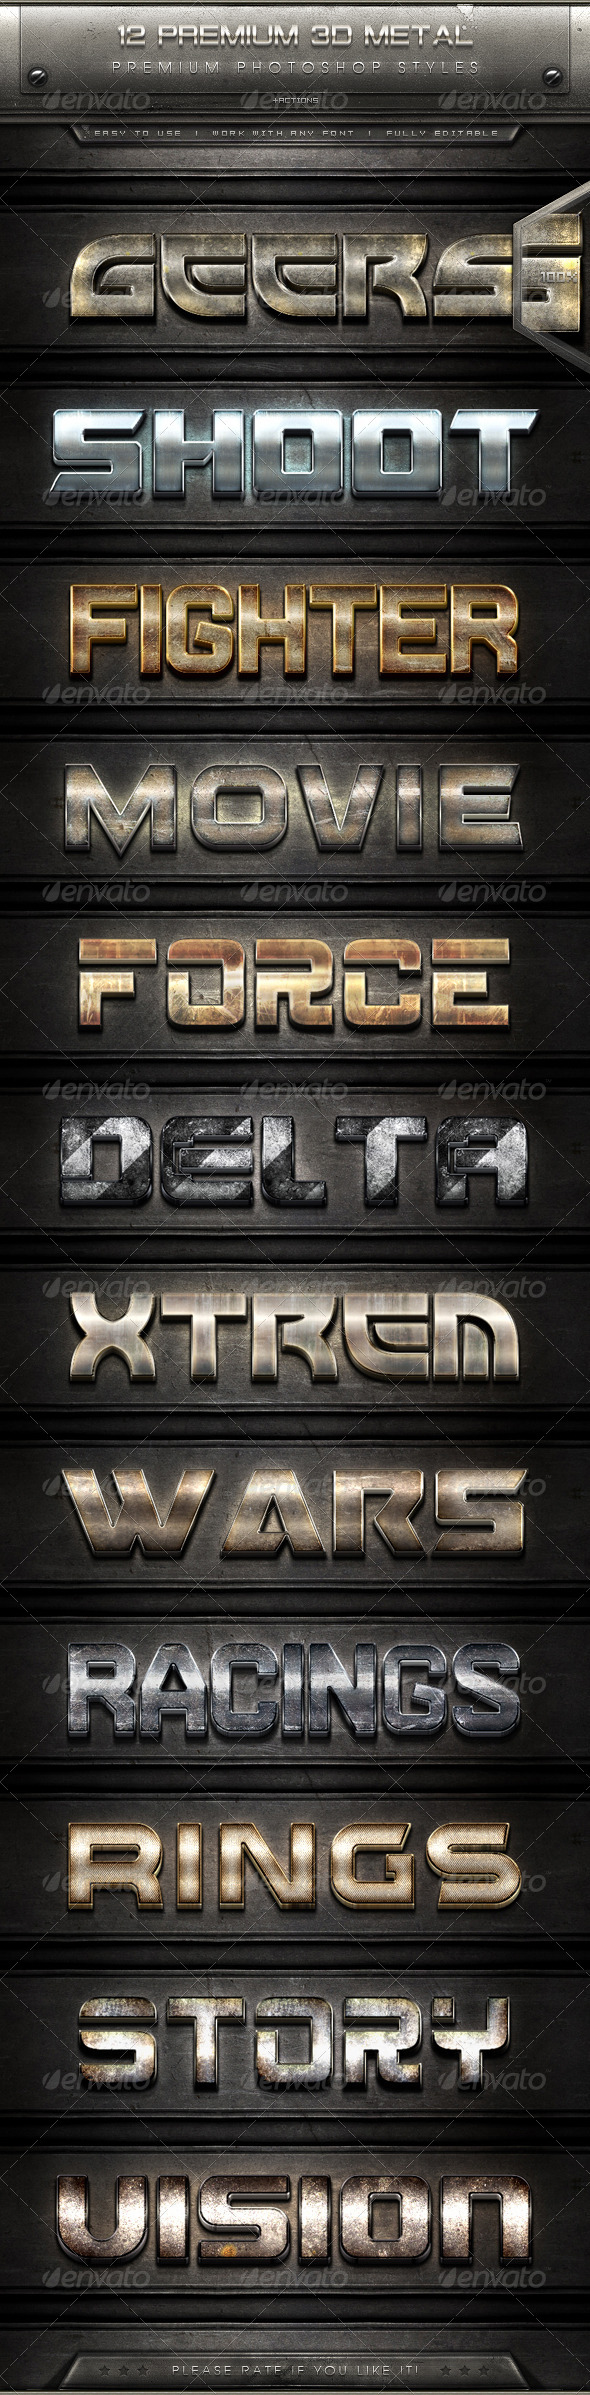 GraphicRiver 12 Premium 3D Metal Text Effect Styles & Actions 7911489